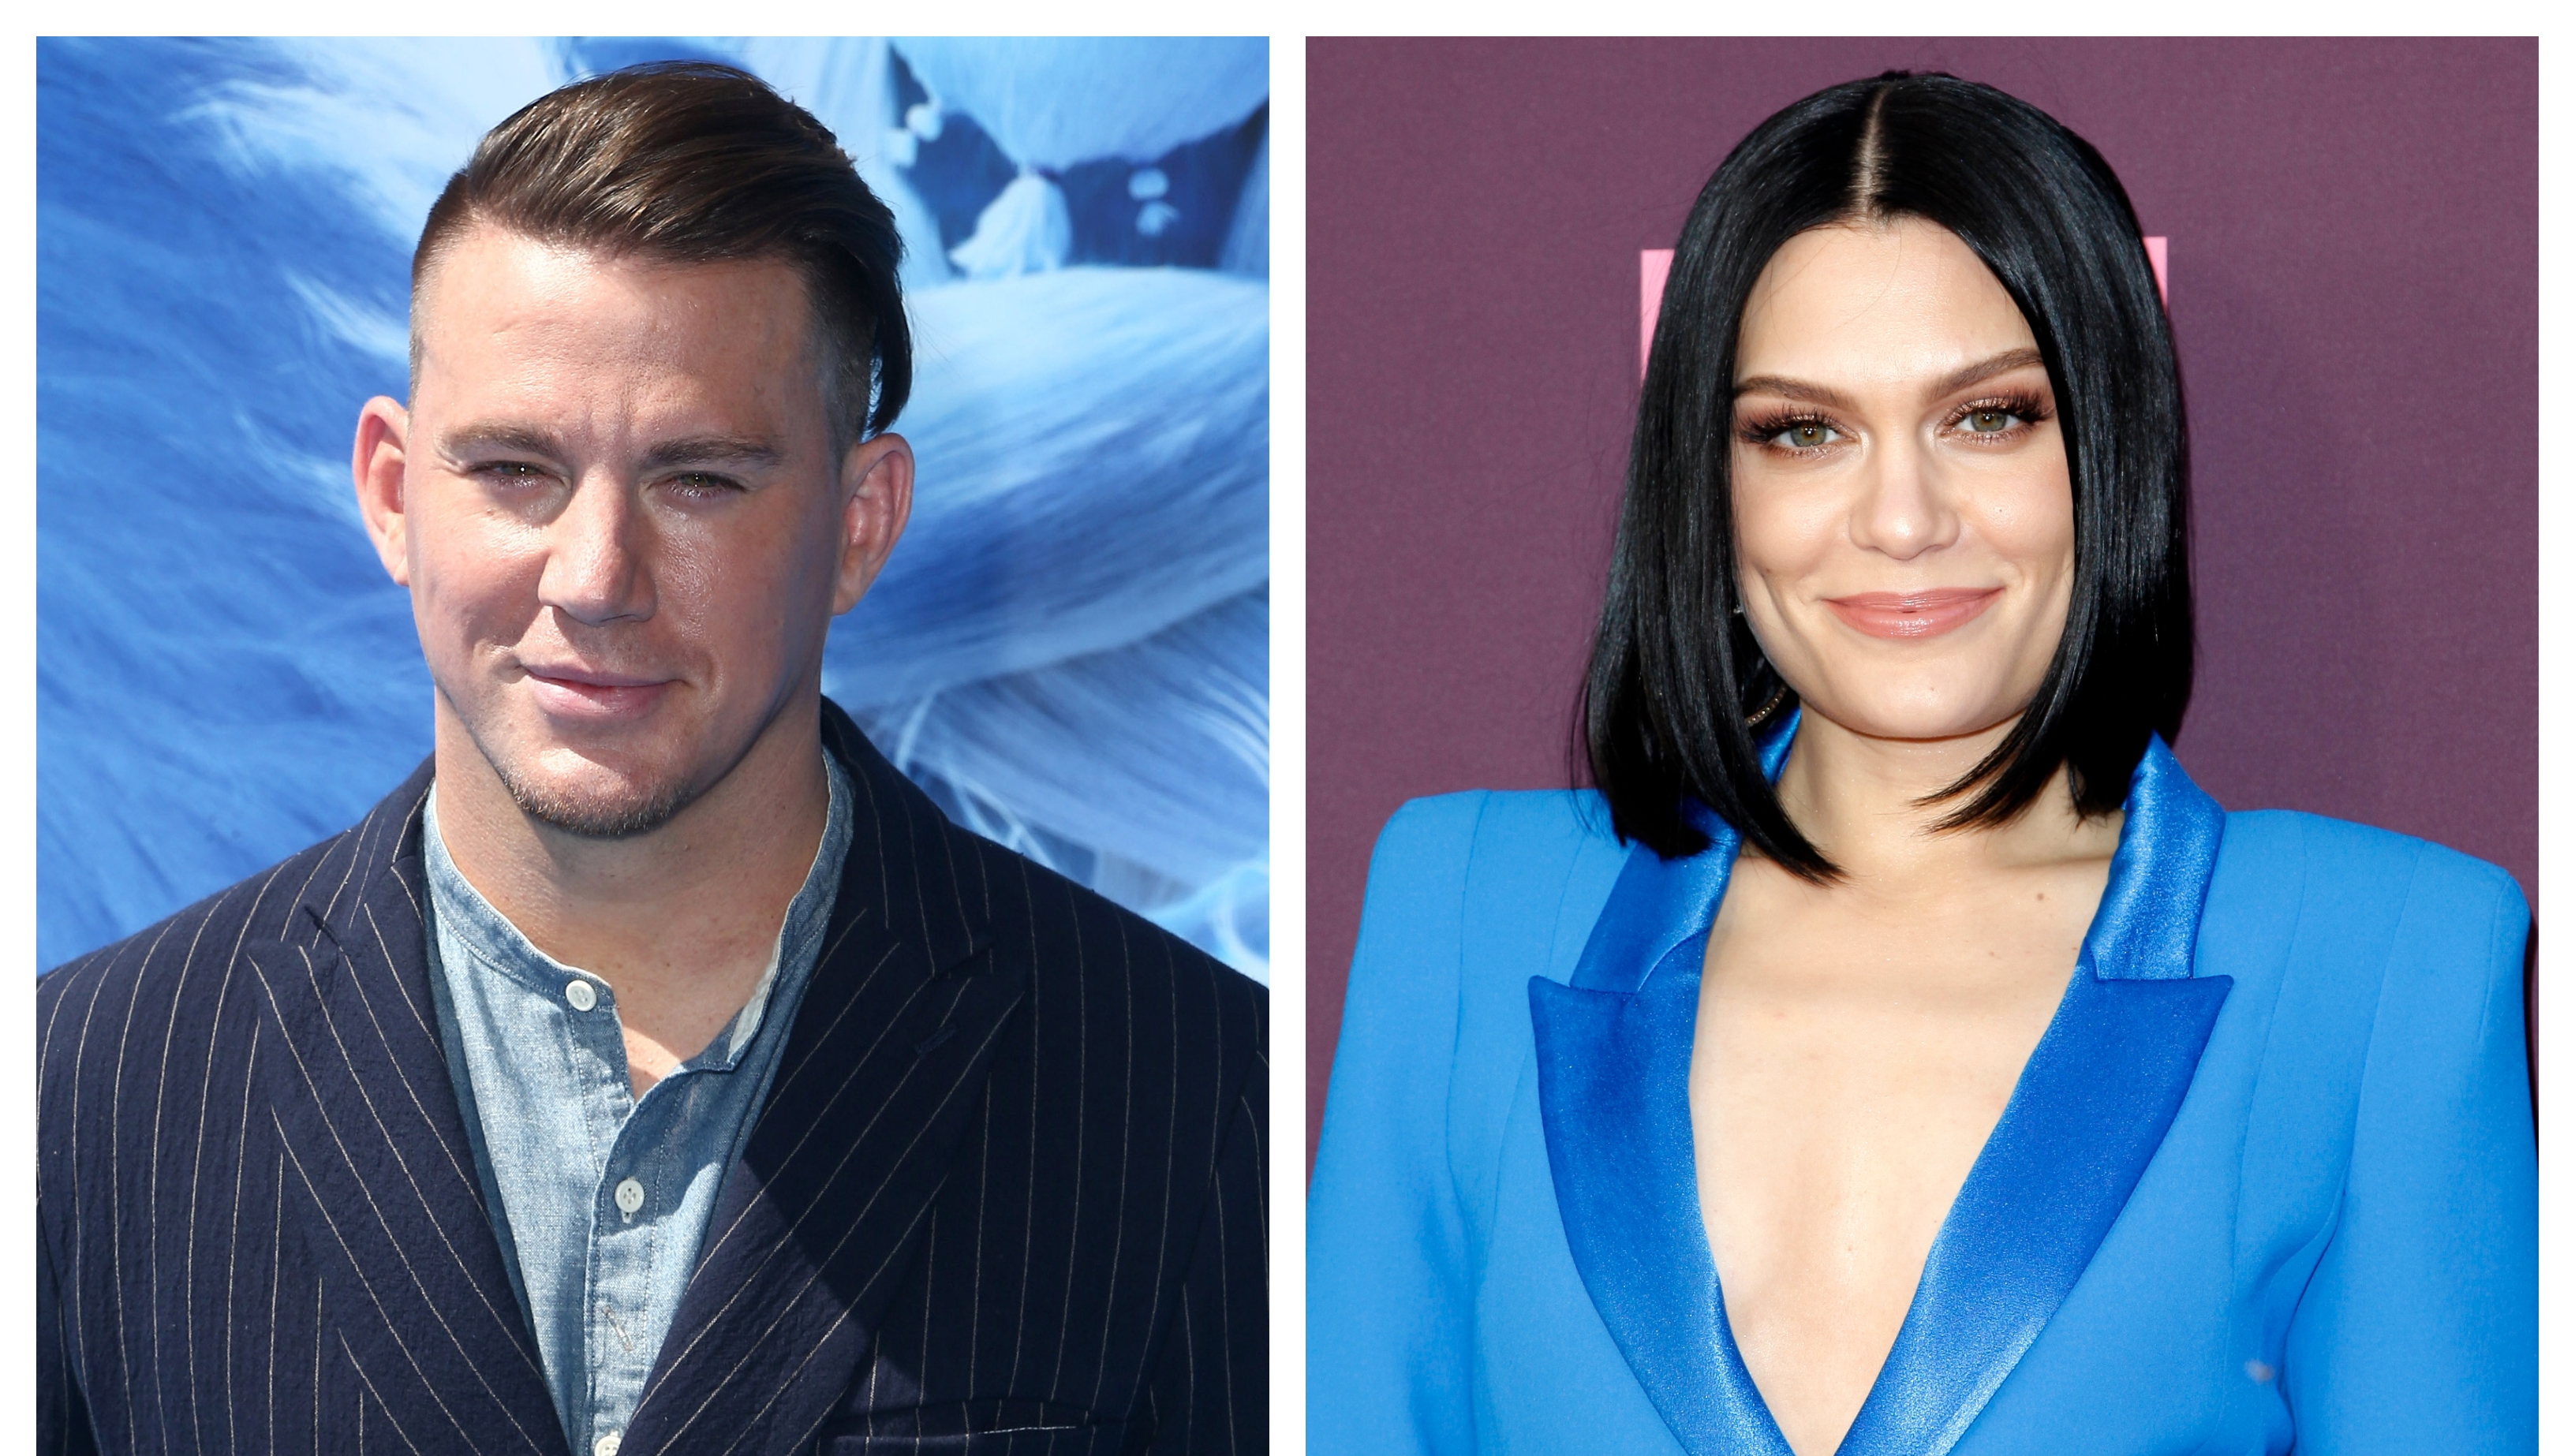 Channing-Tatum-Jessie-J-Everly-Concert